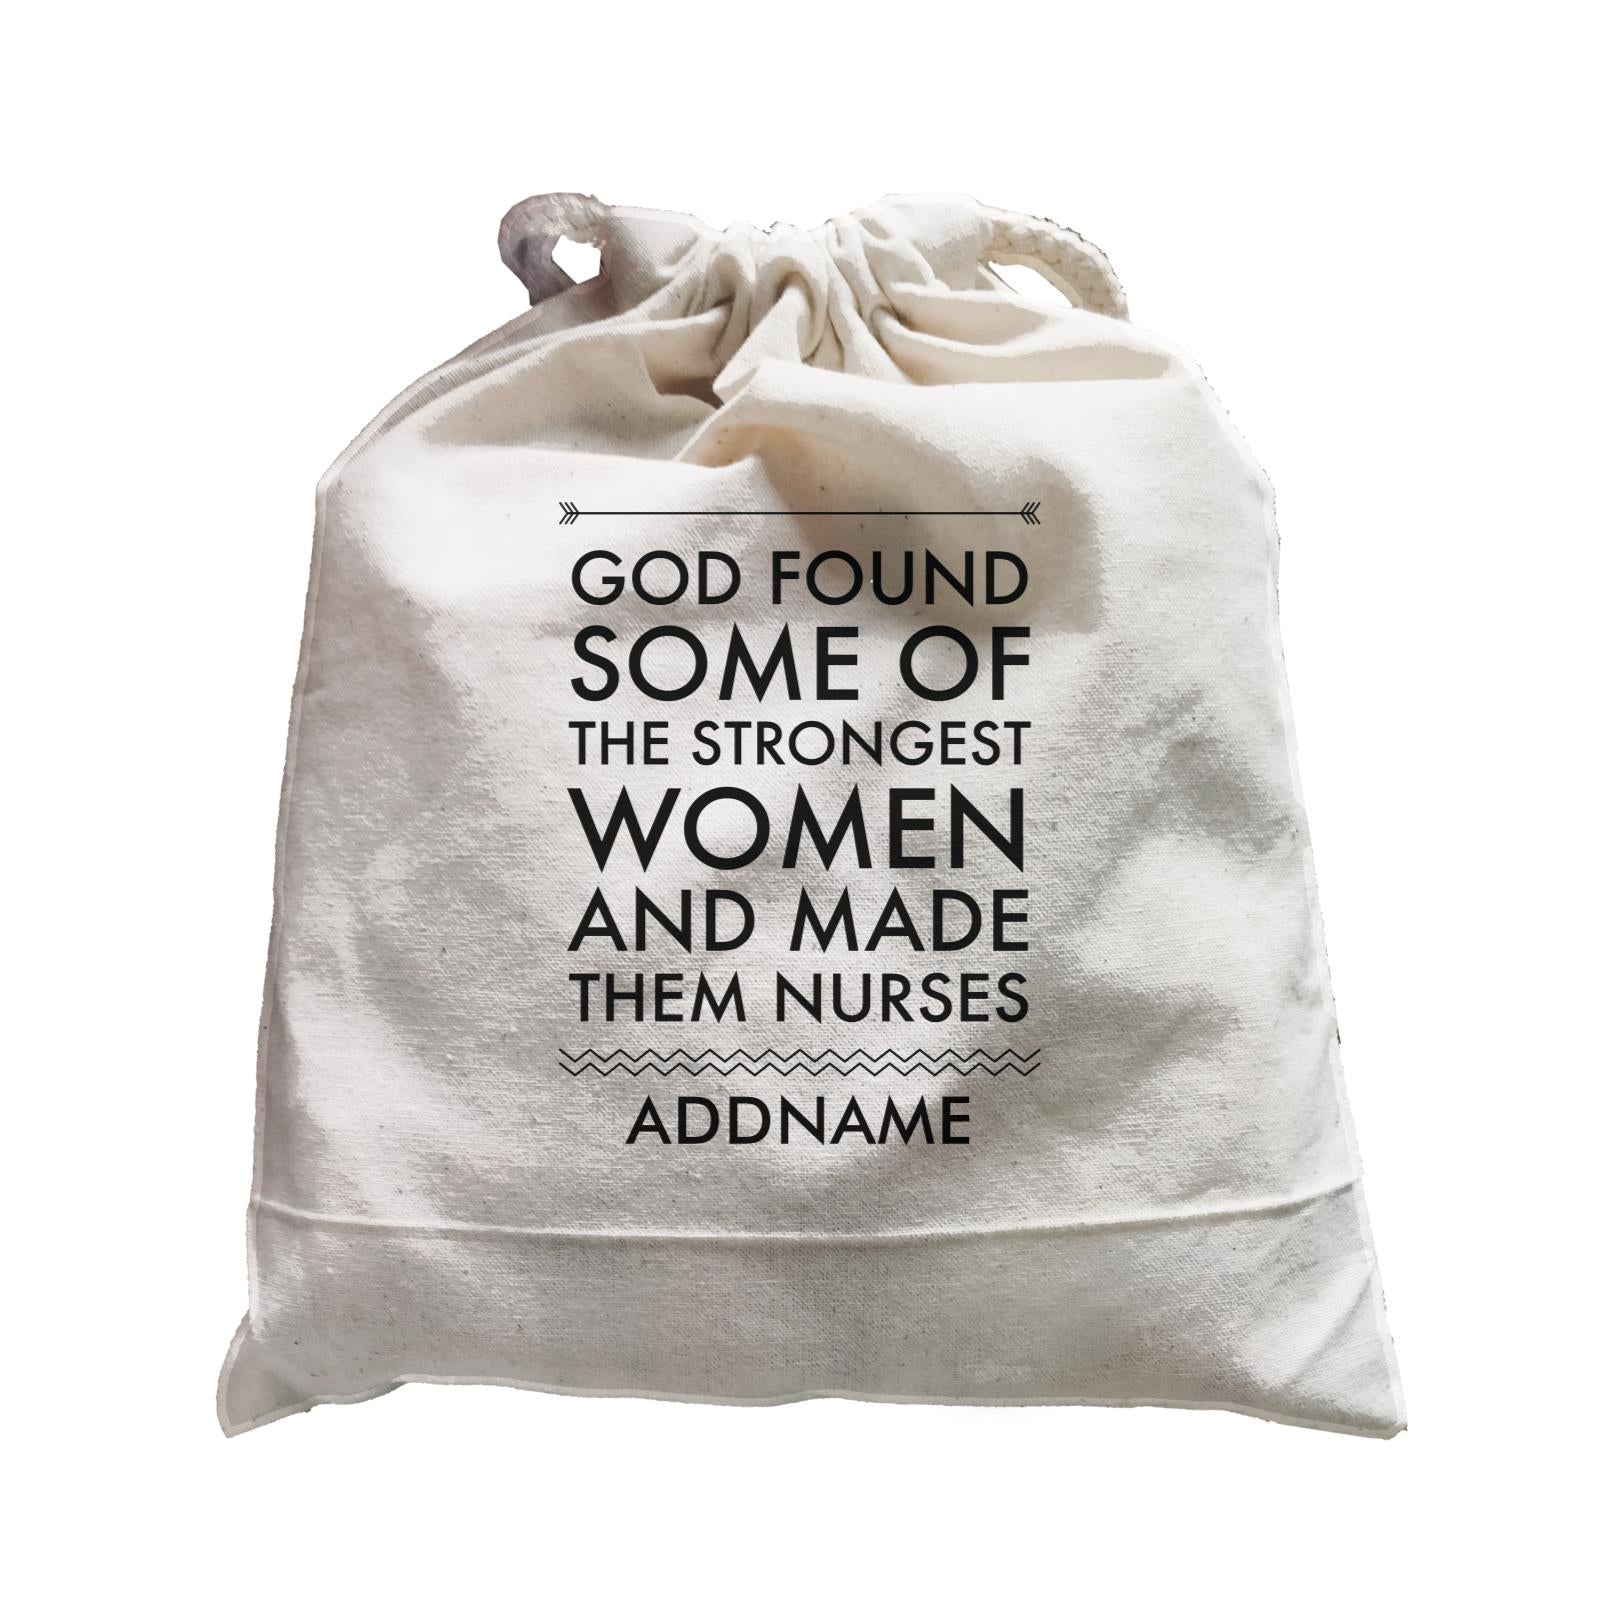 Nurse Quotes God Found Some Of The Strongest Woman And Made Them Nurses Addname Satchel